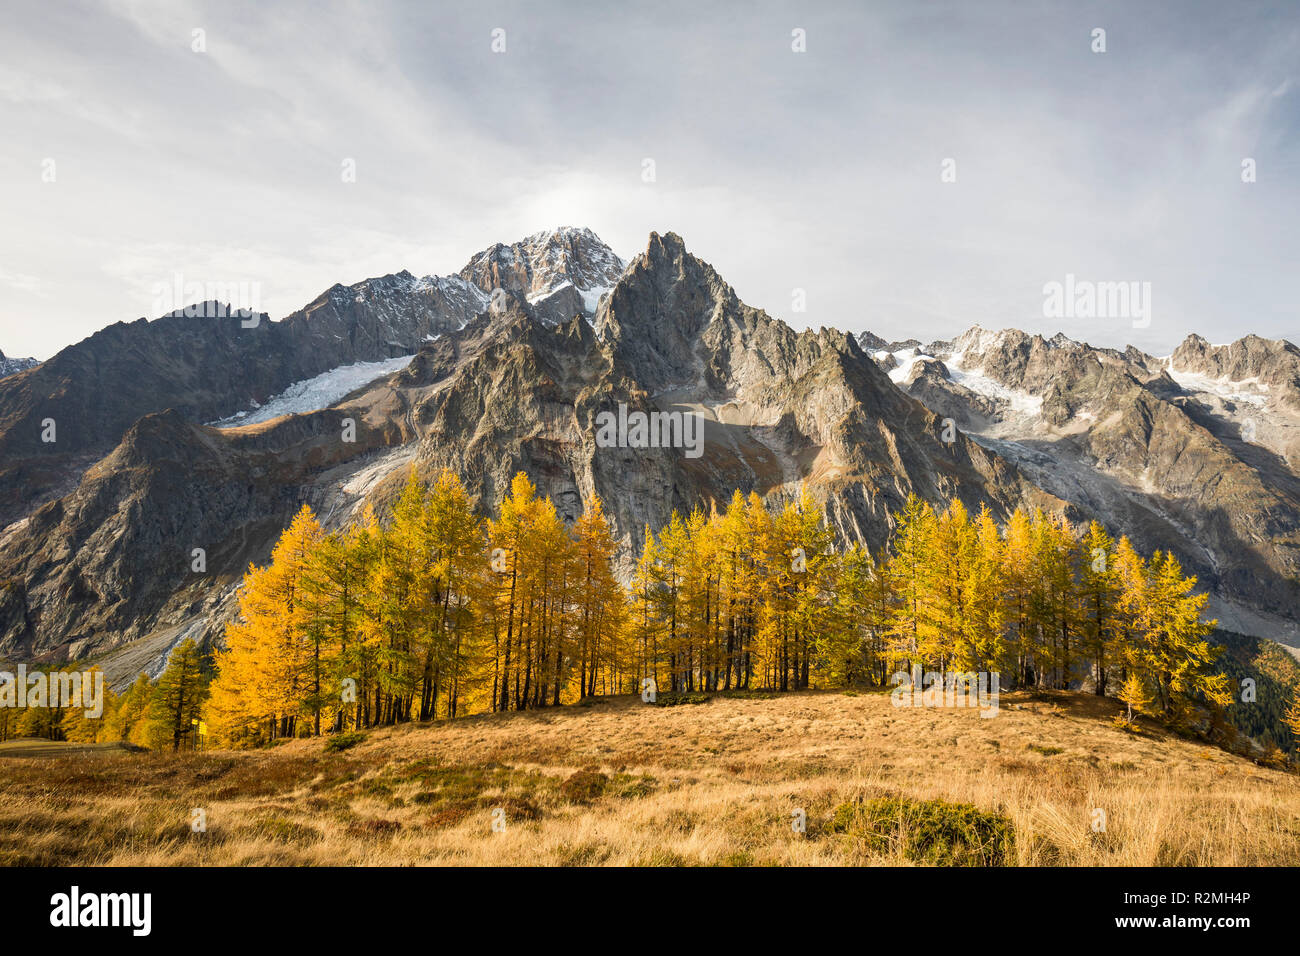 View over the Val Veny to Mont Blanc (4810m), Courmayeur, Aosta province, Aosta Valley, Italy - Stock Image